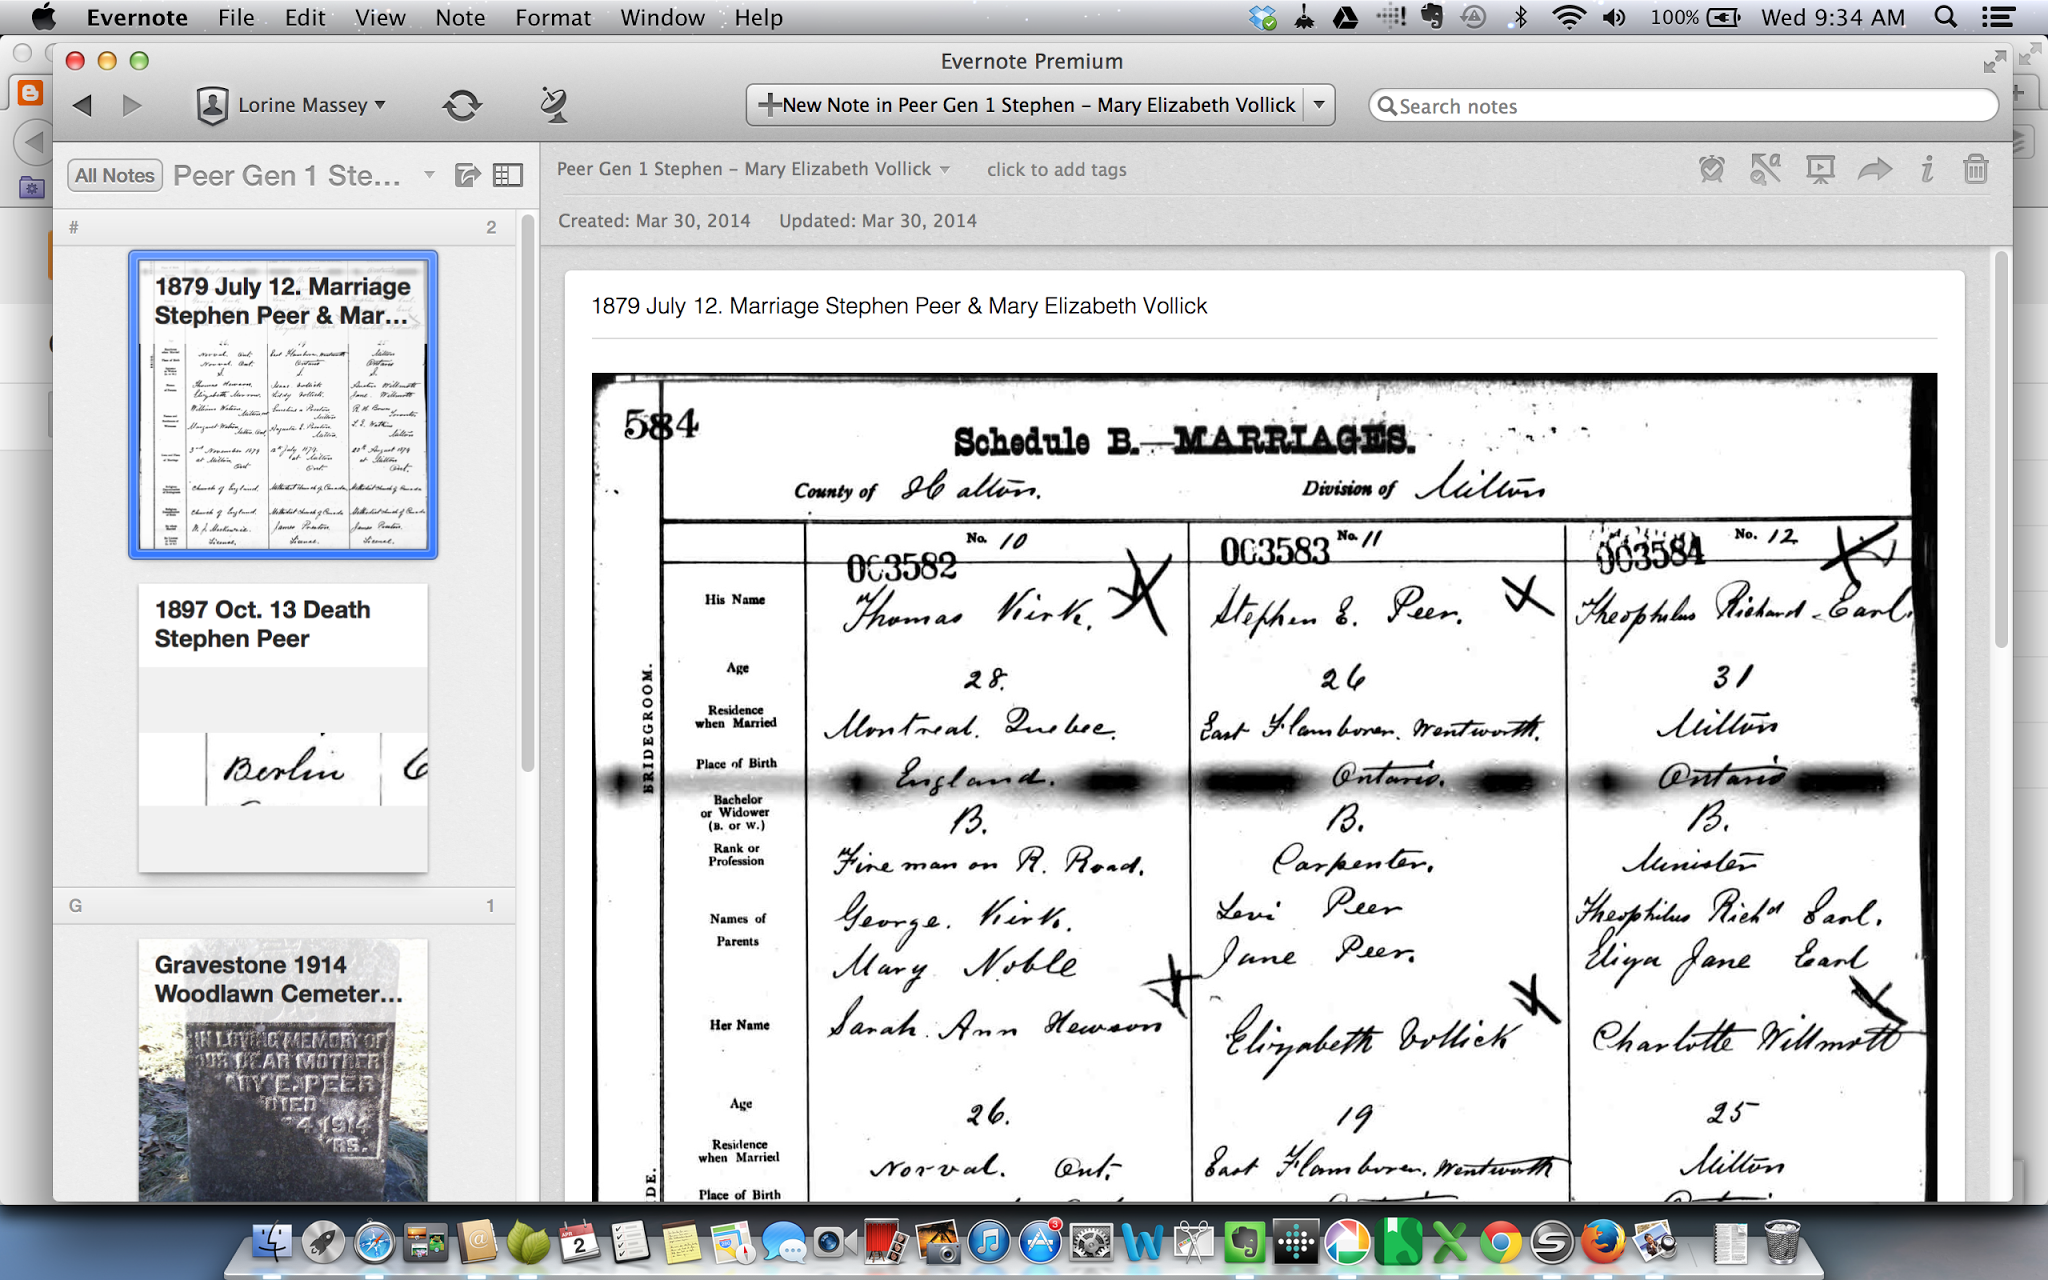 Olive Tree Genealogy Blog: Using Evernote to Make Virtual Binders for Genealogy Organization